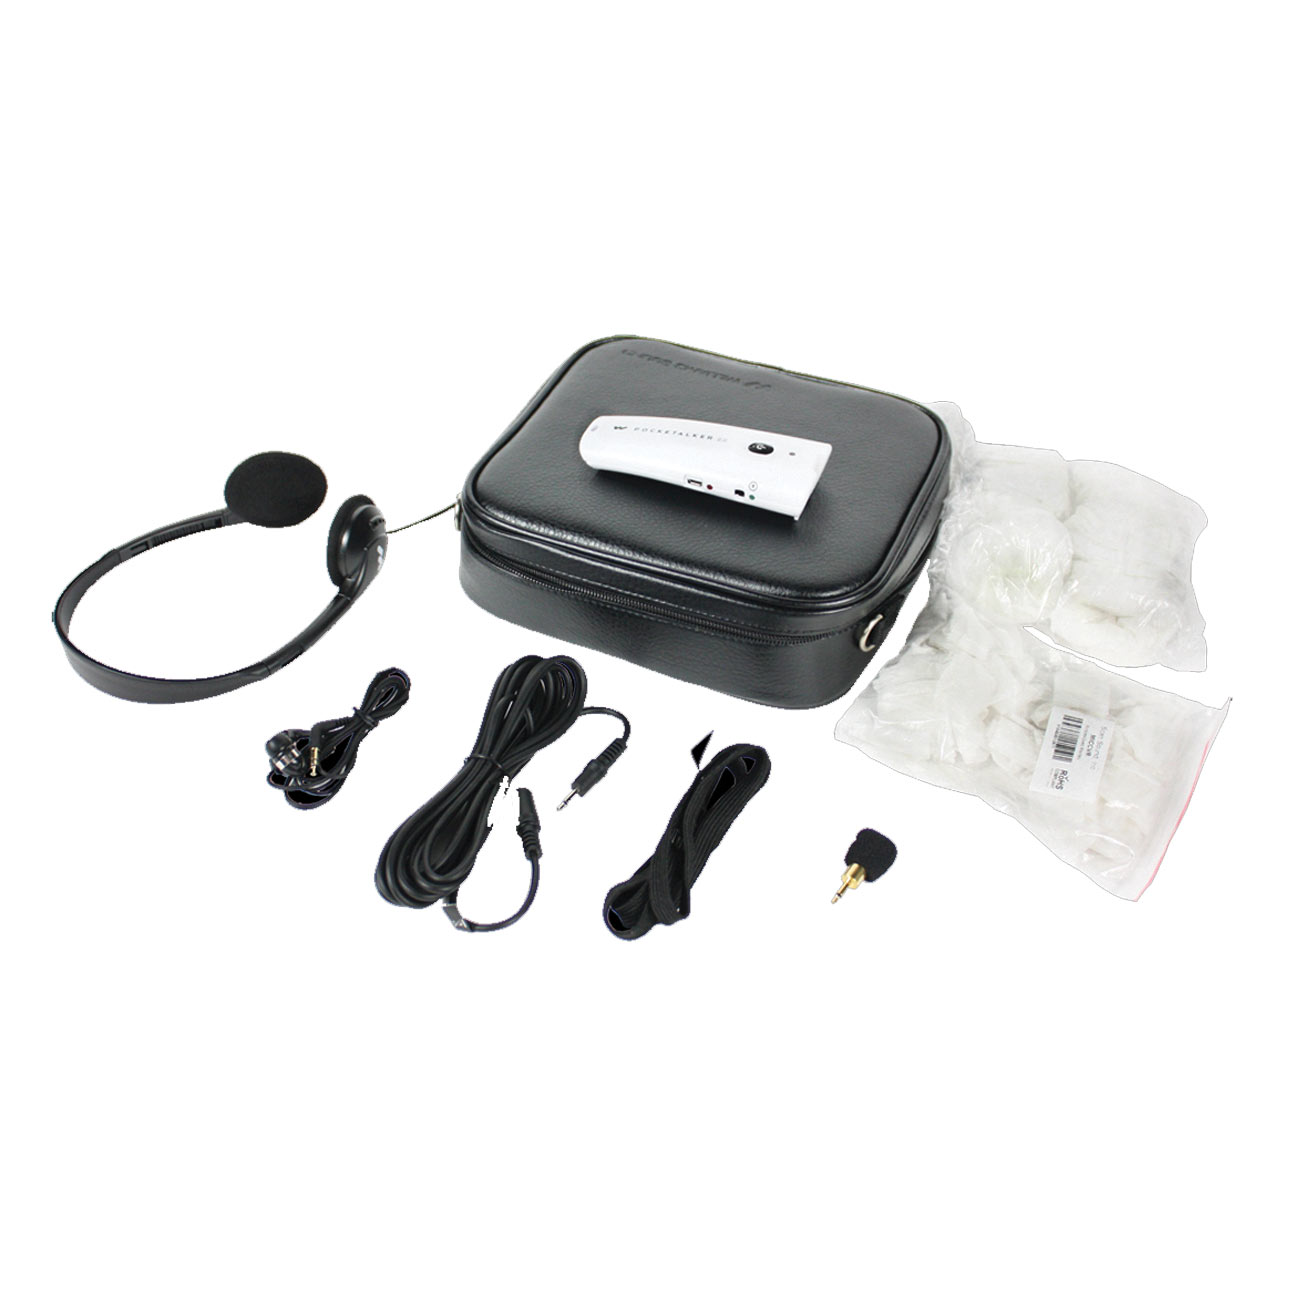 Pocketalker Basic Communication Kit 2.0 System